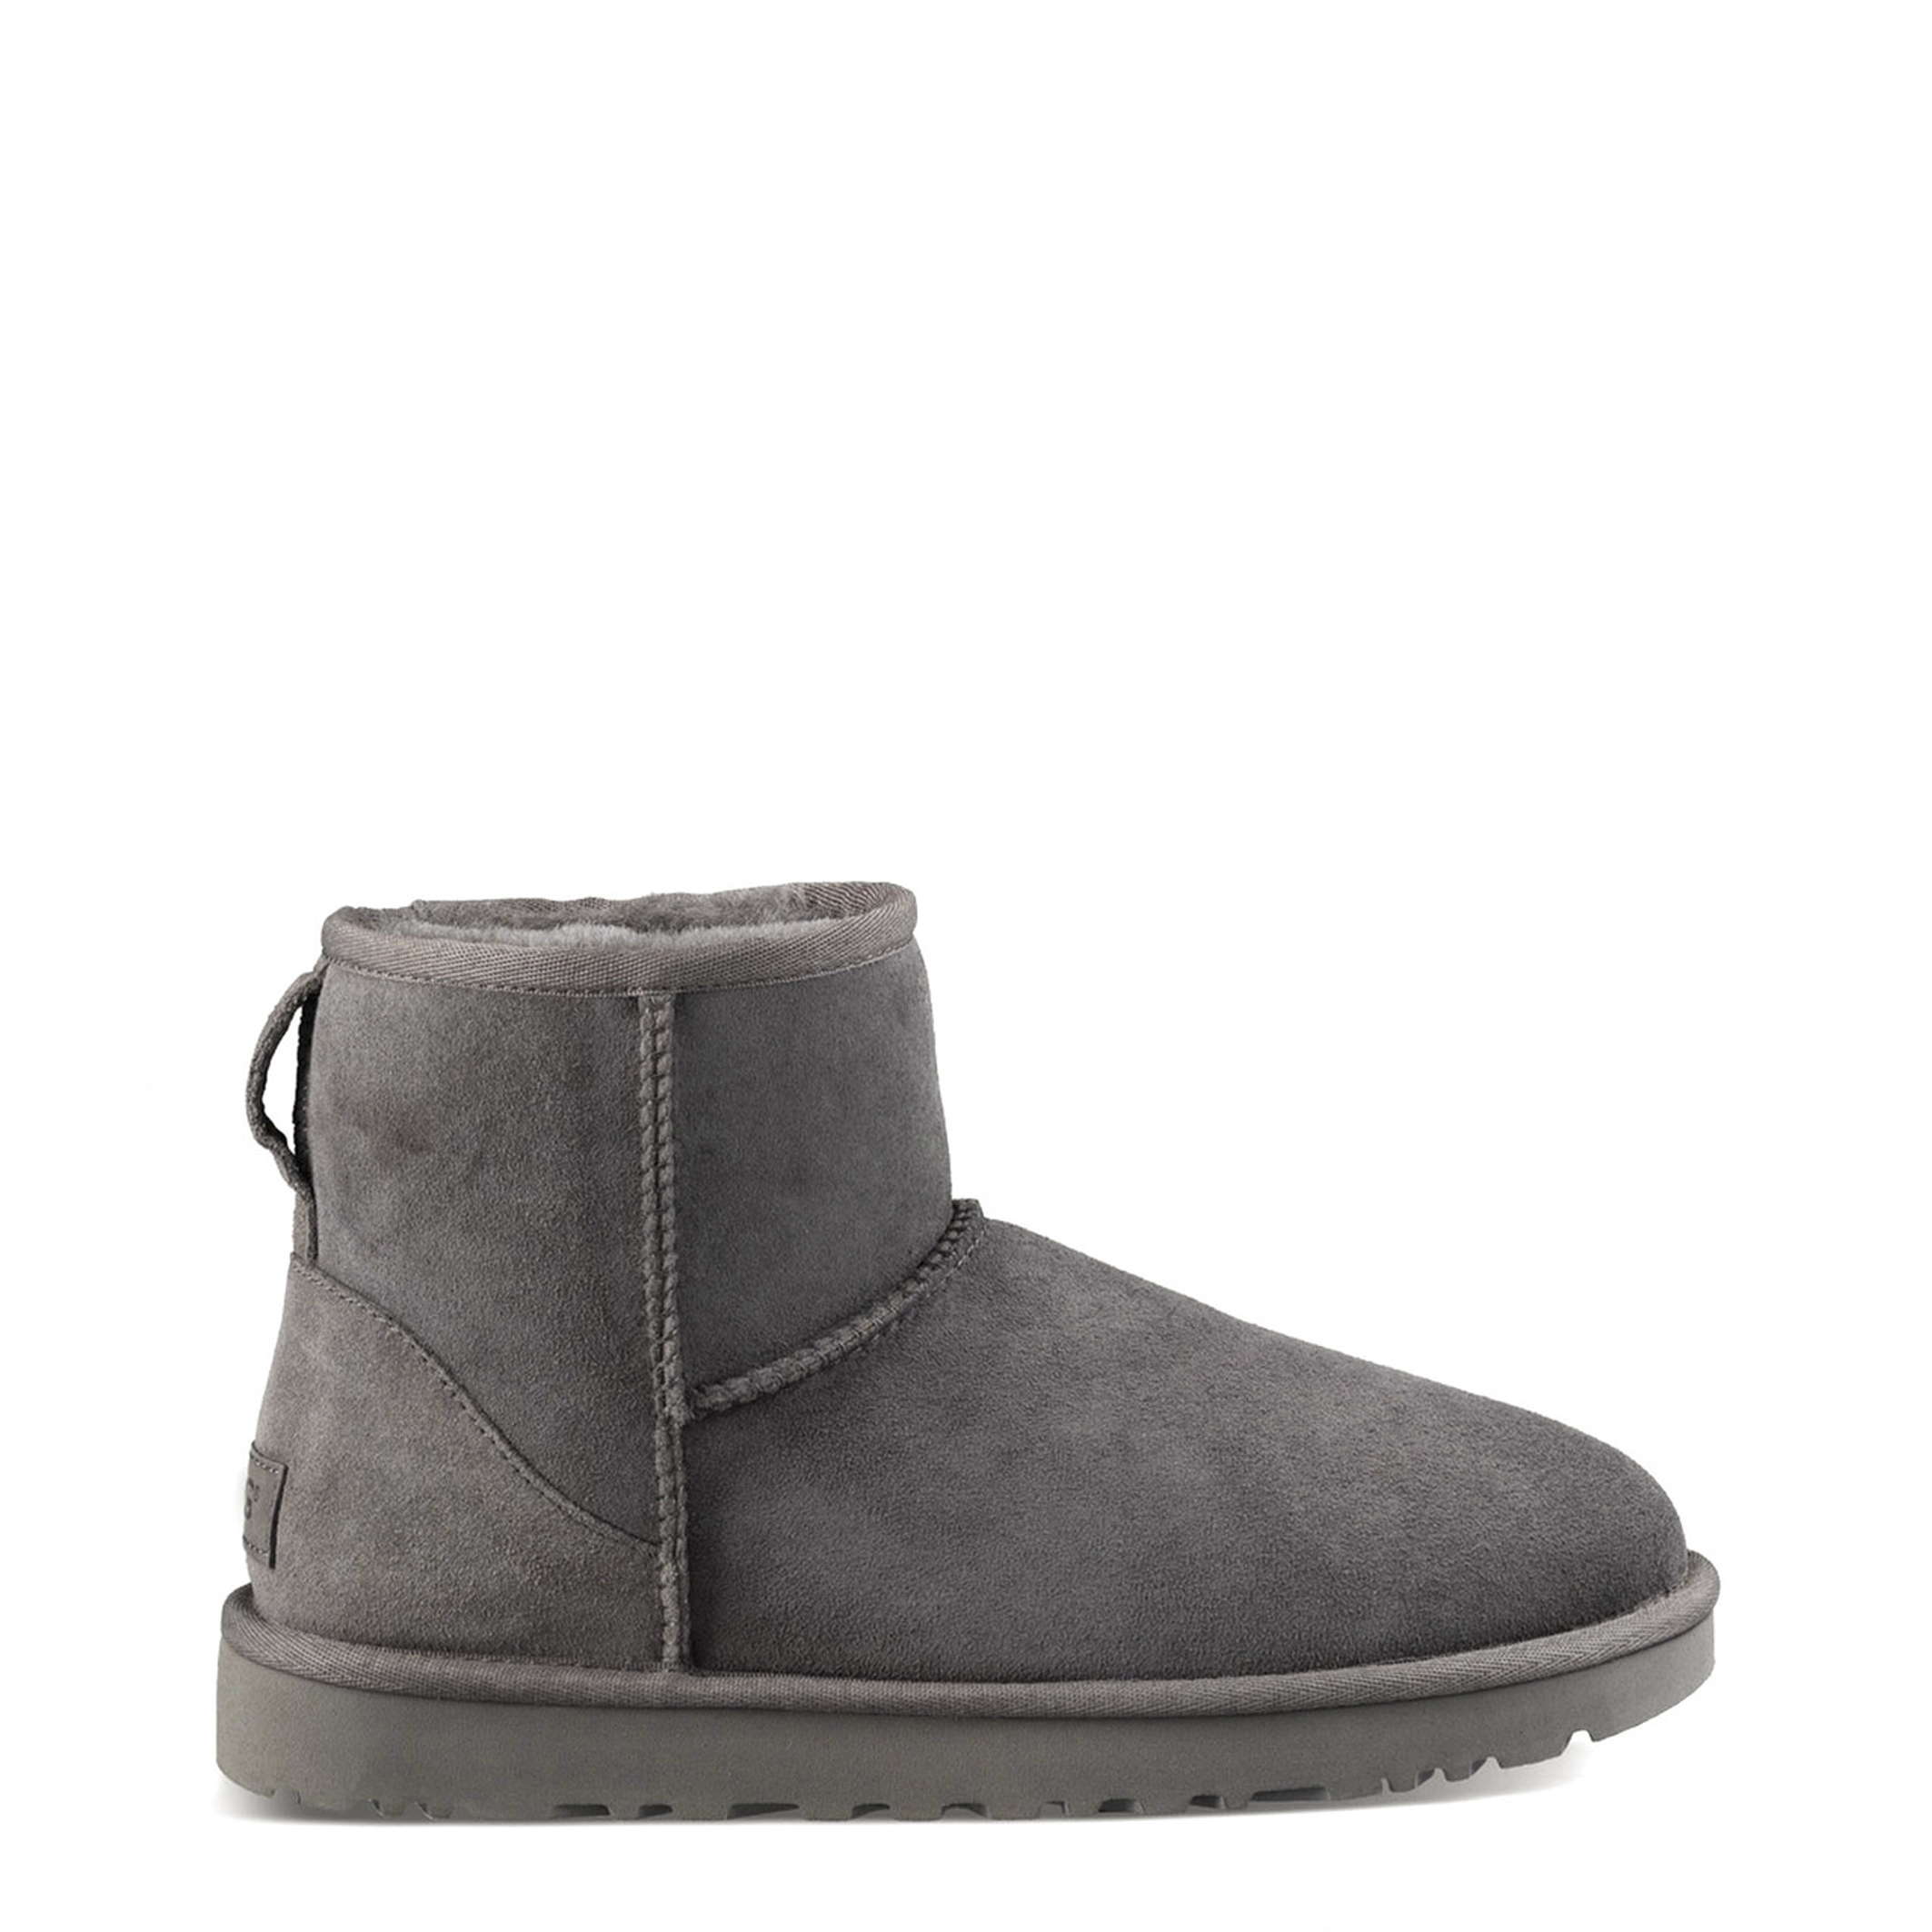 Chaussures  Ugg 1016222 grey